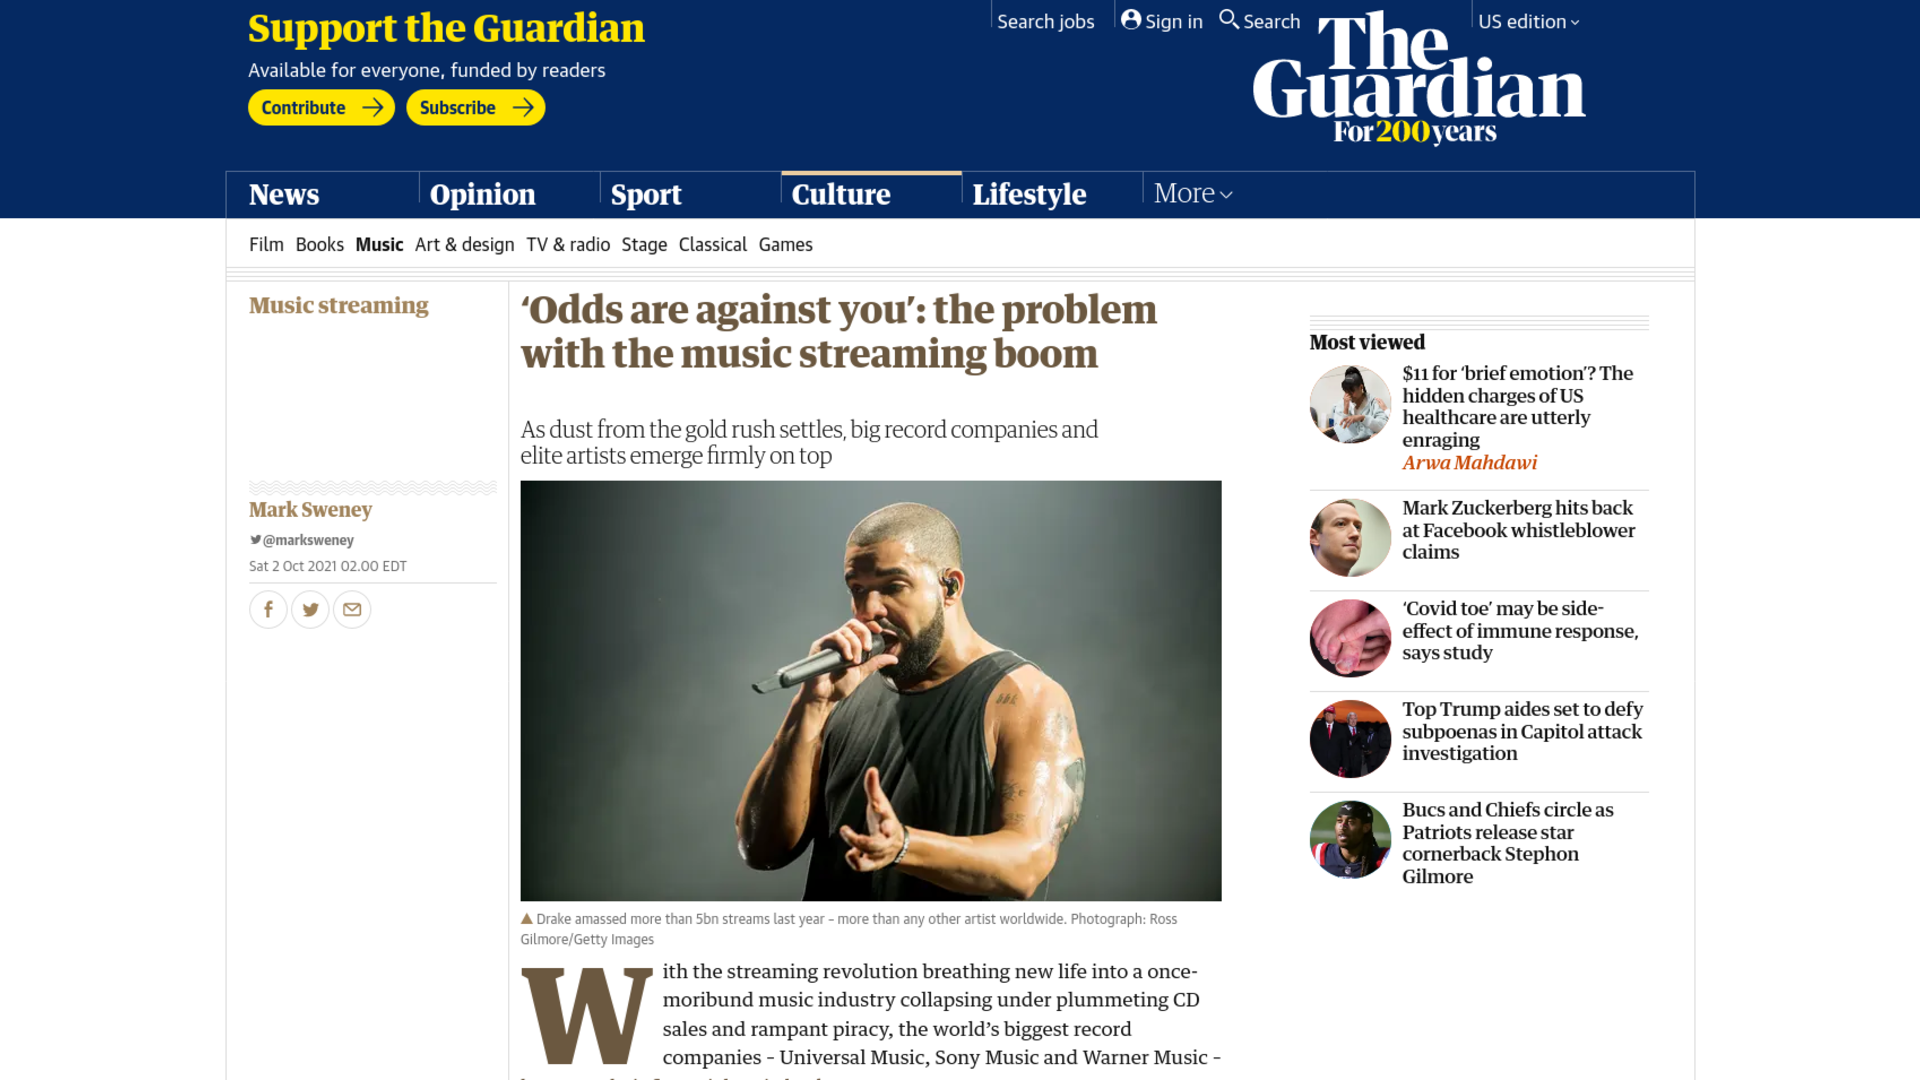 Fairness Rocks News 'Odds are against you': the problem with the music streaming boom